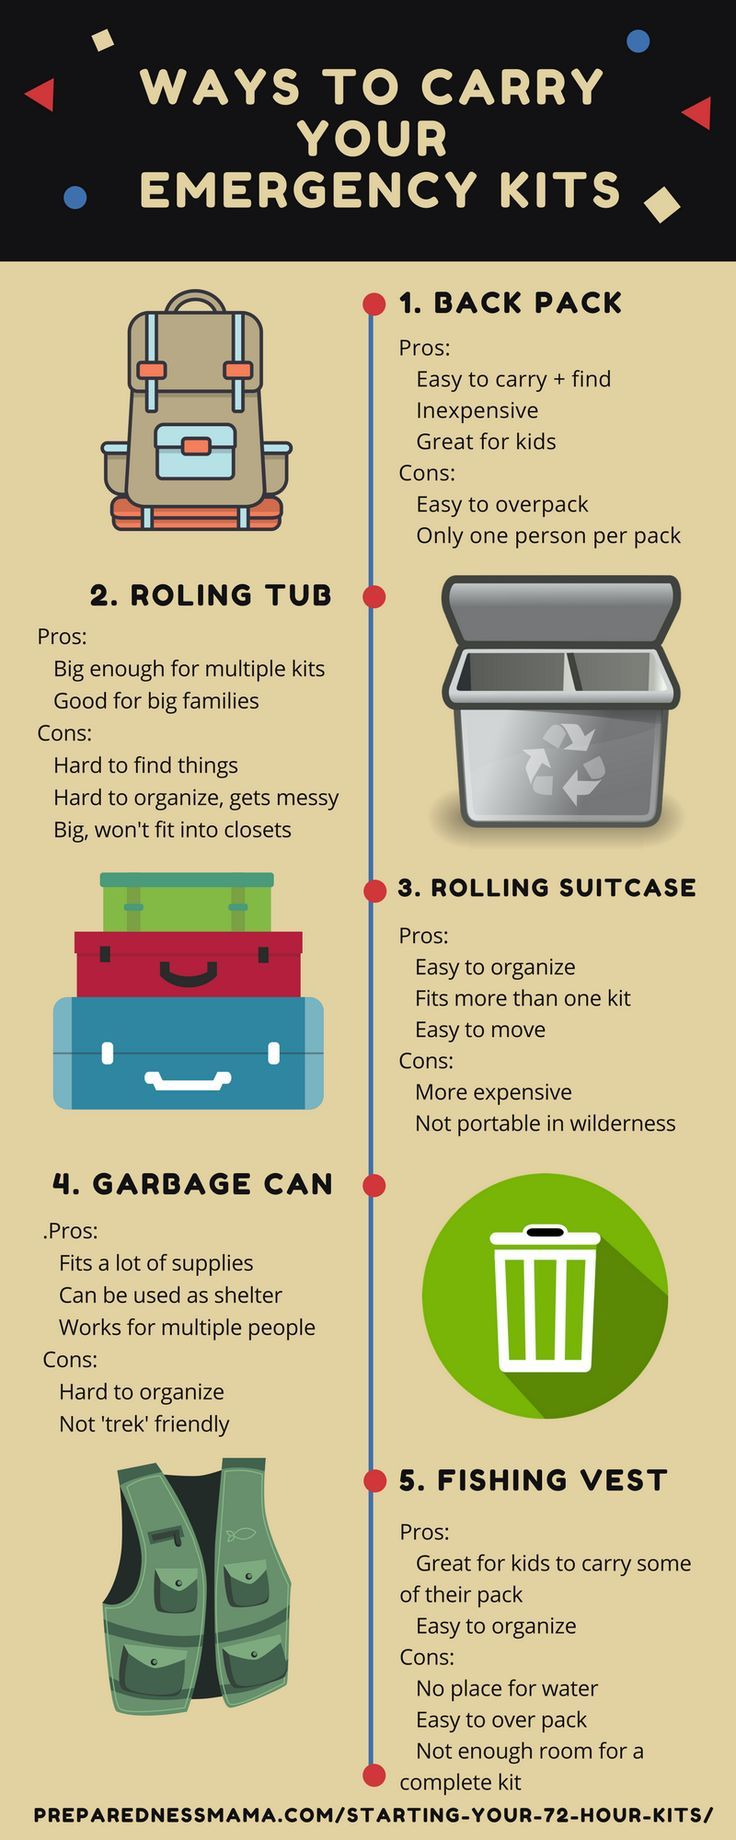 Stuck on a way to carry your emergency kit? Here are the pros and cons of 5 ways to carry your 72-hour kit | PreparednessMama